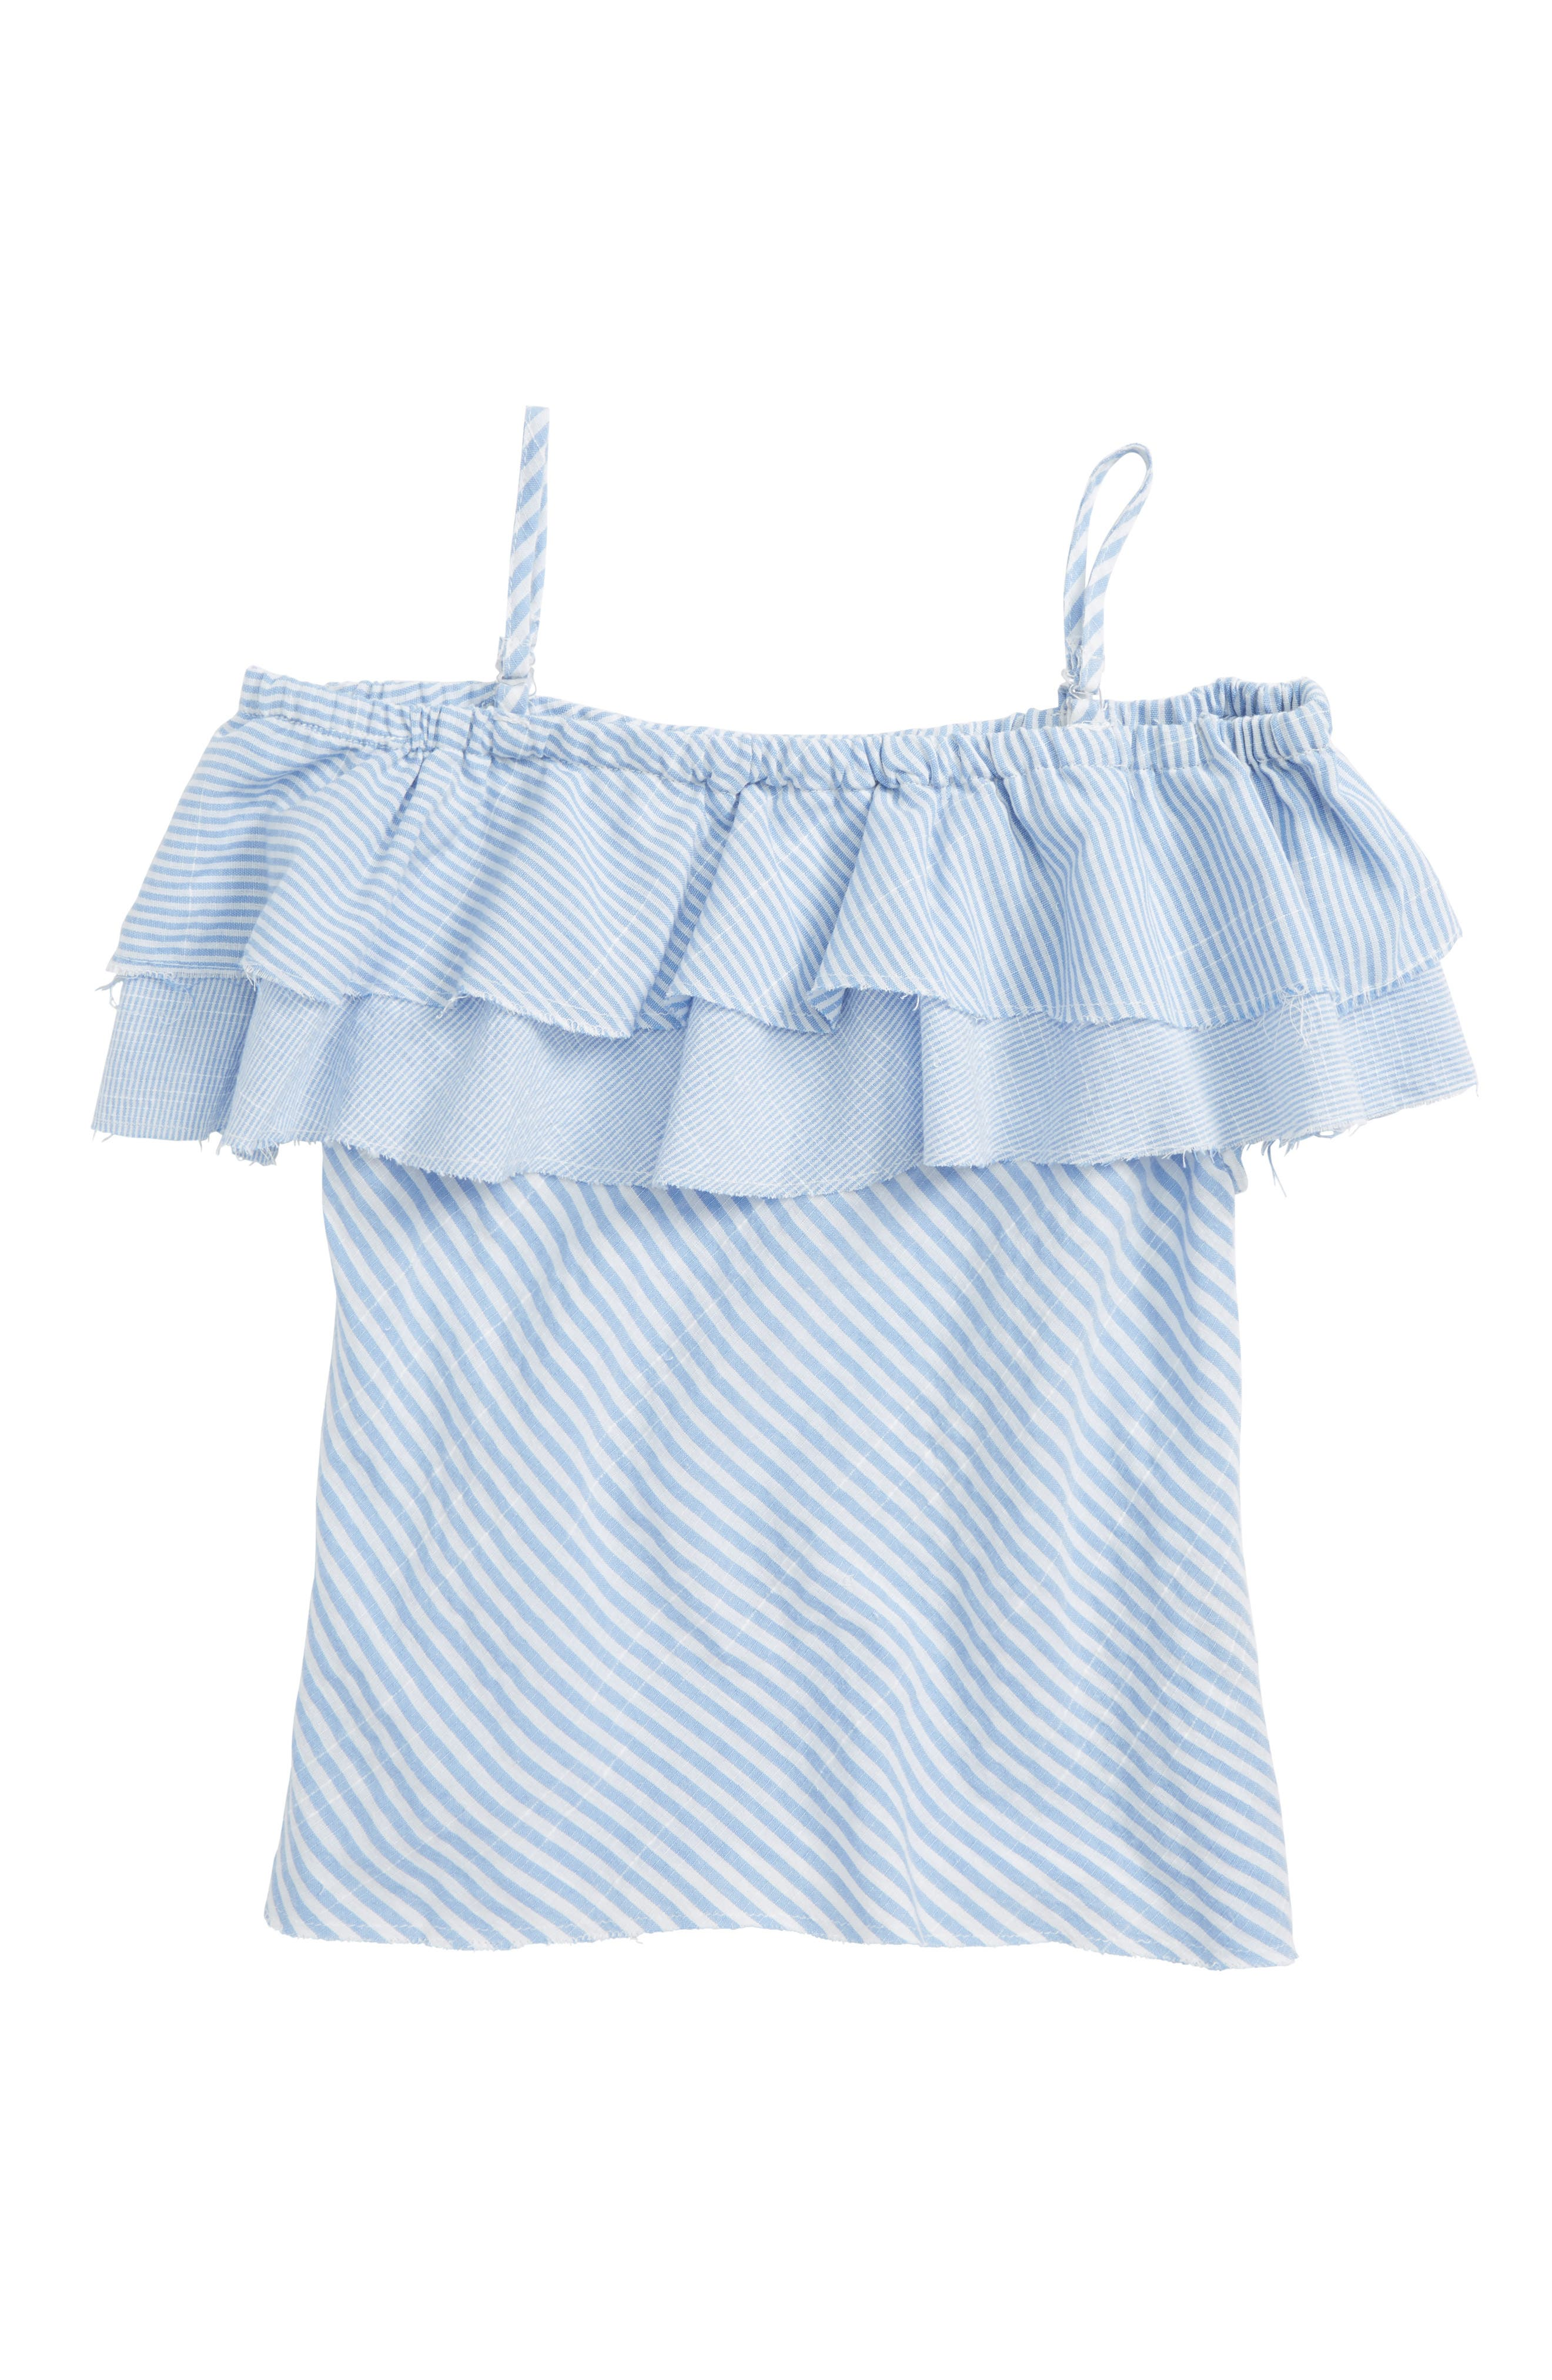 Striped Ruffle Top,                             Main thumbnail 1, color,                             Blue/ White